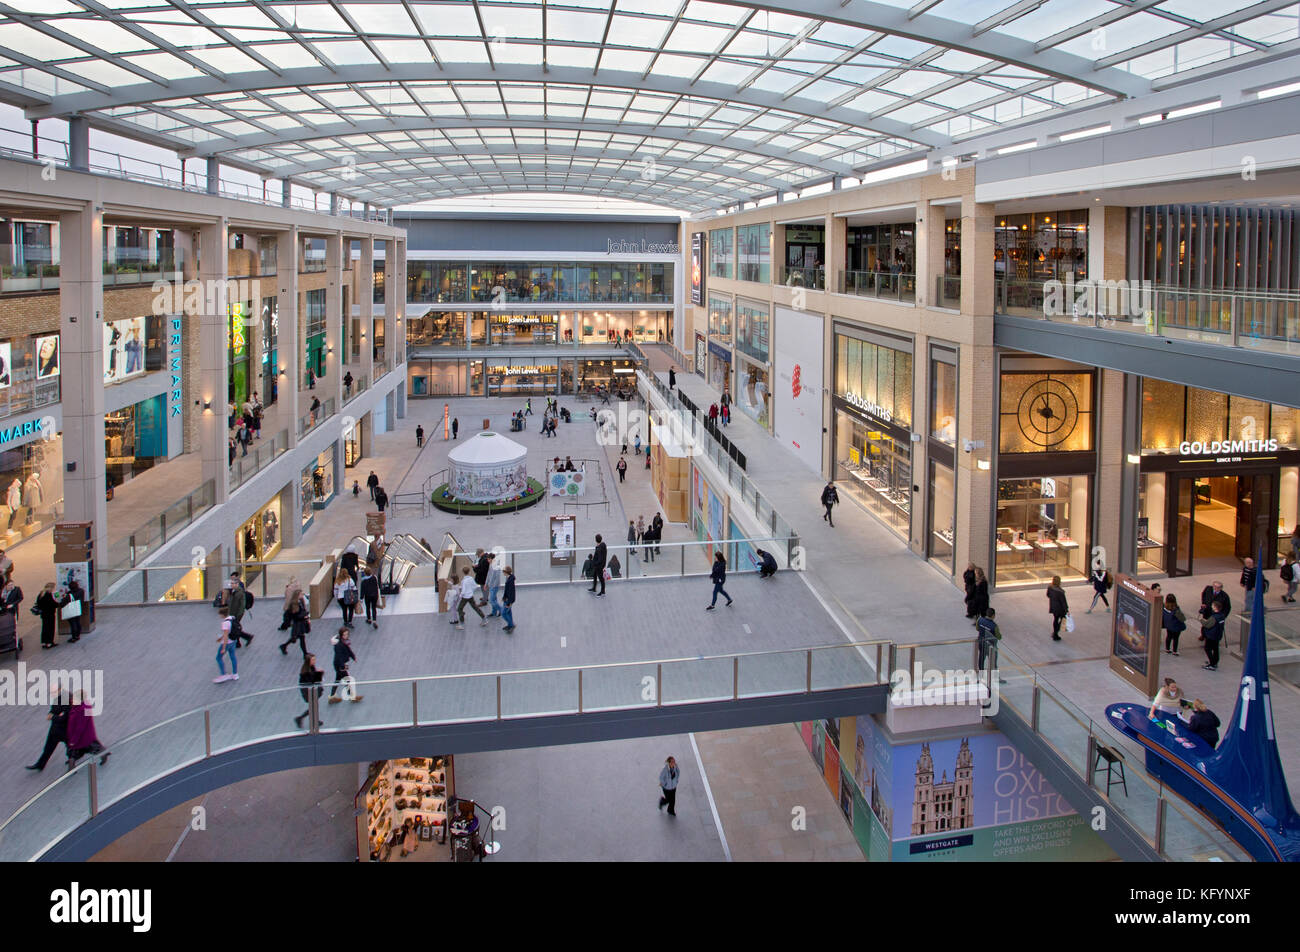 New Westgate Shopping Centre,Oxford,Oxon,England - Stock Image